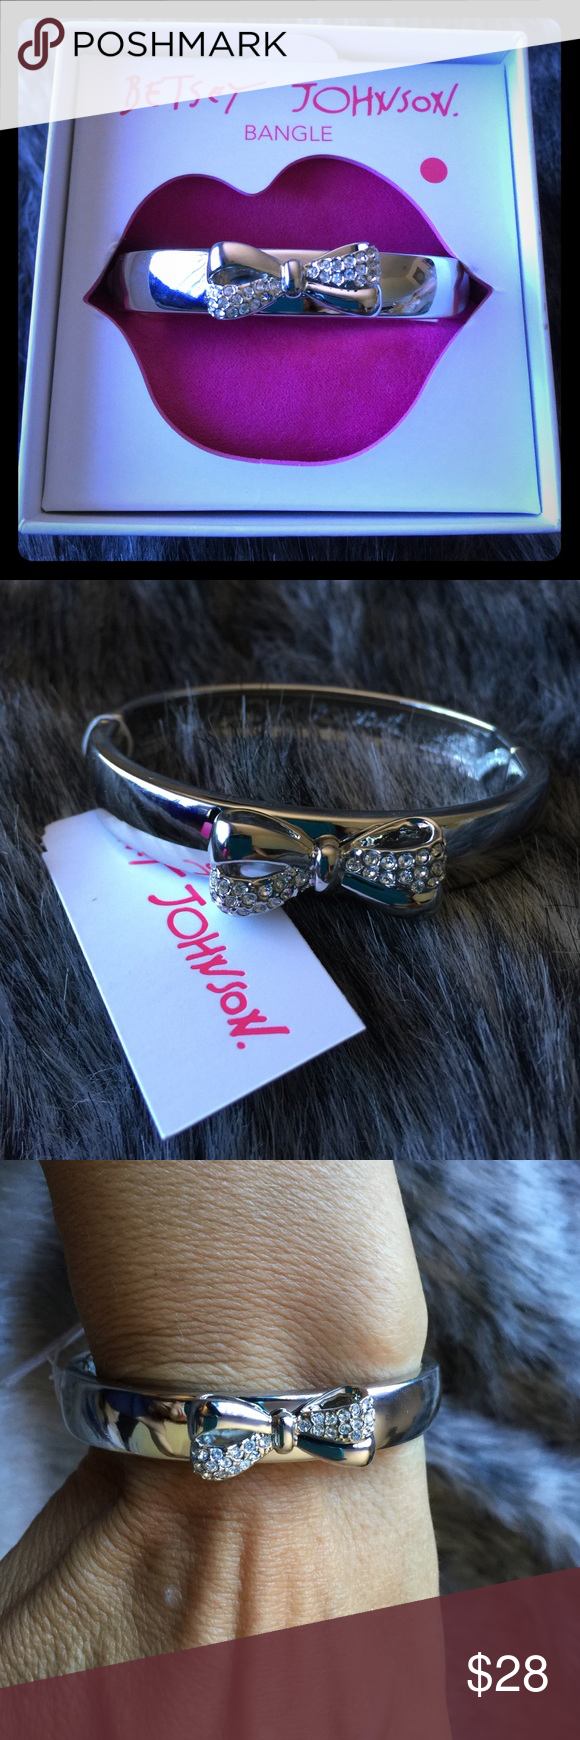 """Betsey Johnson Bow Bangle Gorgeous Betsey Bow Bangle 3/8"""" wide, bow has pave rhinestones.  Bangle inner diameter is 3.25"""" and is designed to fit a 6""""-7.5"""" wrist. You can see how roomy it is and on that part of my wrist I measure 6.5"""".  New in box.  Magnetic(strong) clasp.   Non-smoking home, new with tags.  Purchased from Betsey Johnson directly(the store).  Retails for $35. bundle for discount, not taking offers. Amy Betsey Johnson Jewelry Bracelets"""